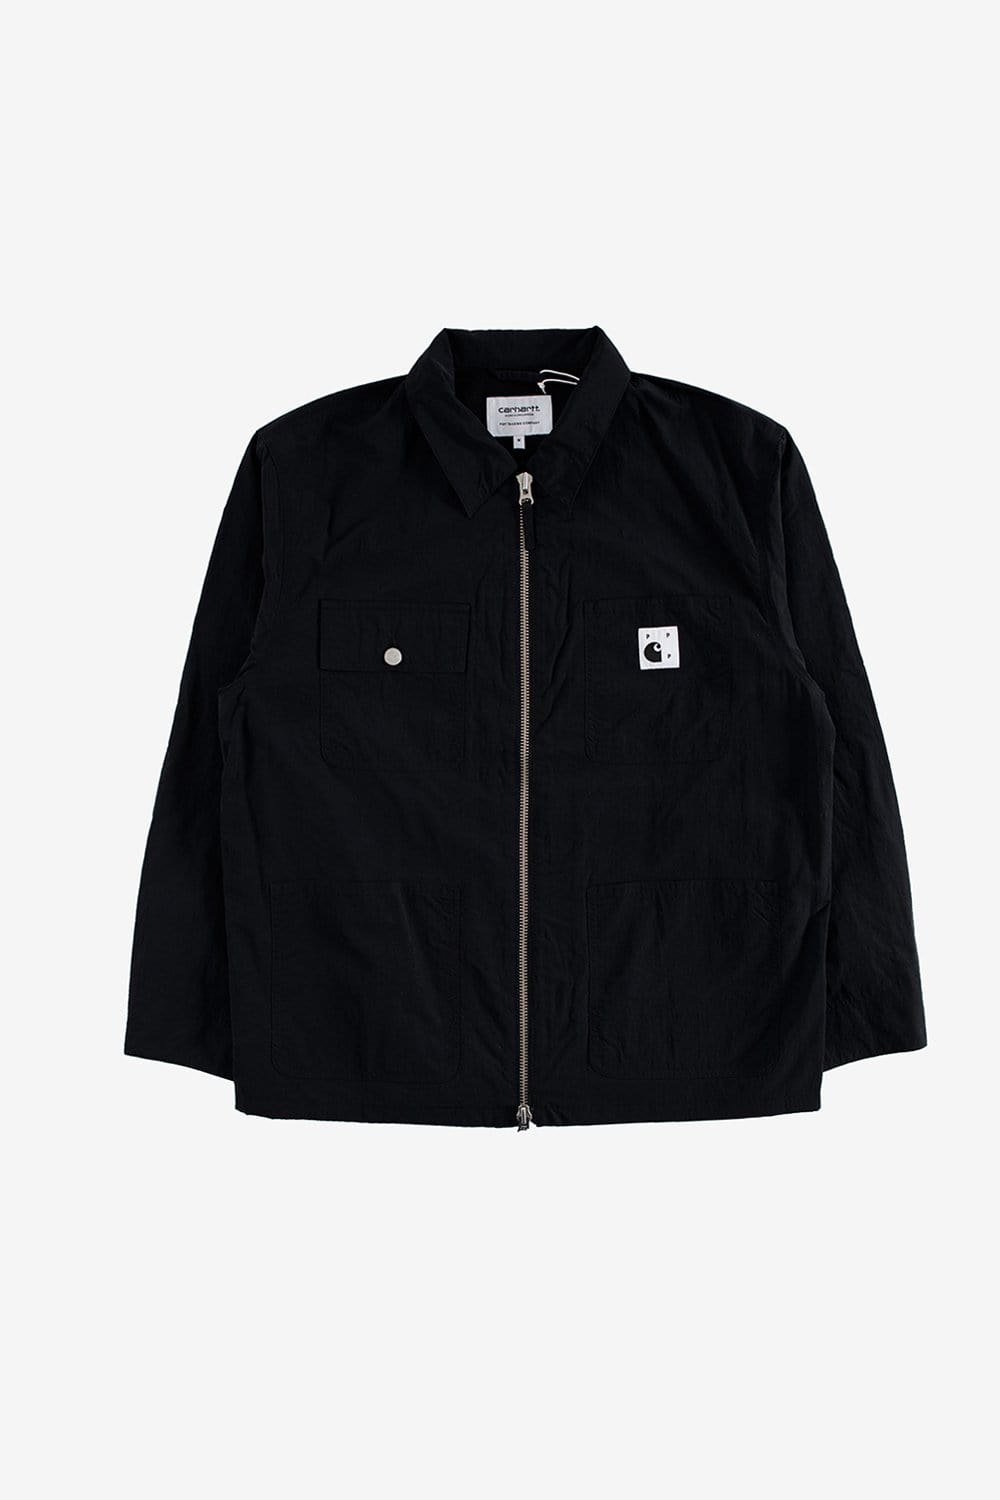 Carhartt WIP Apparel Carhartt WIP x Pop Trading Company Michigan Chore Coat